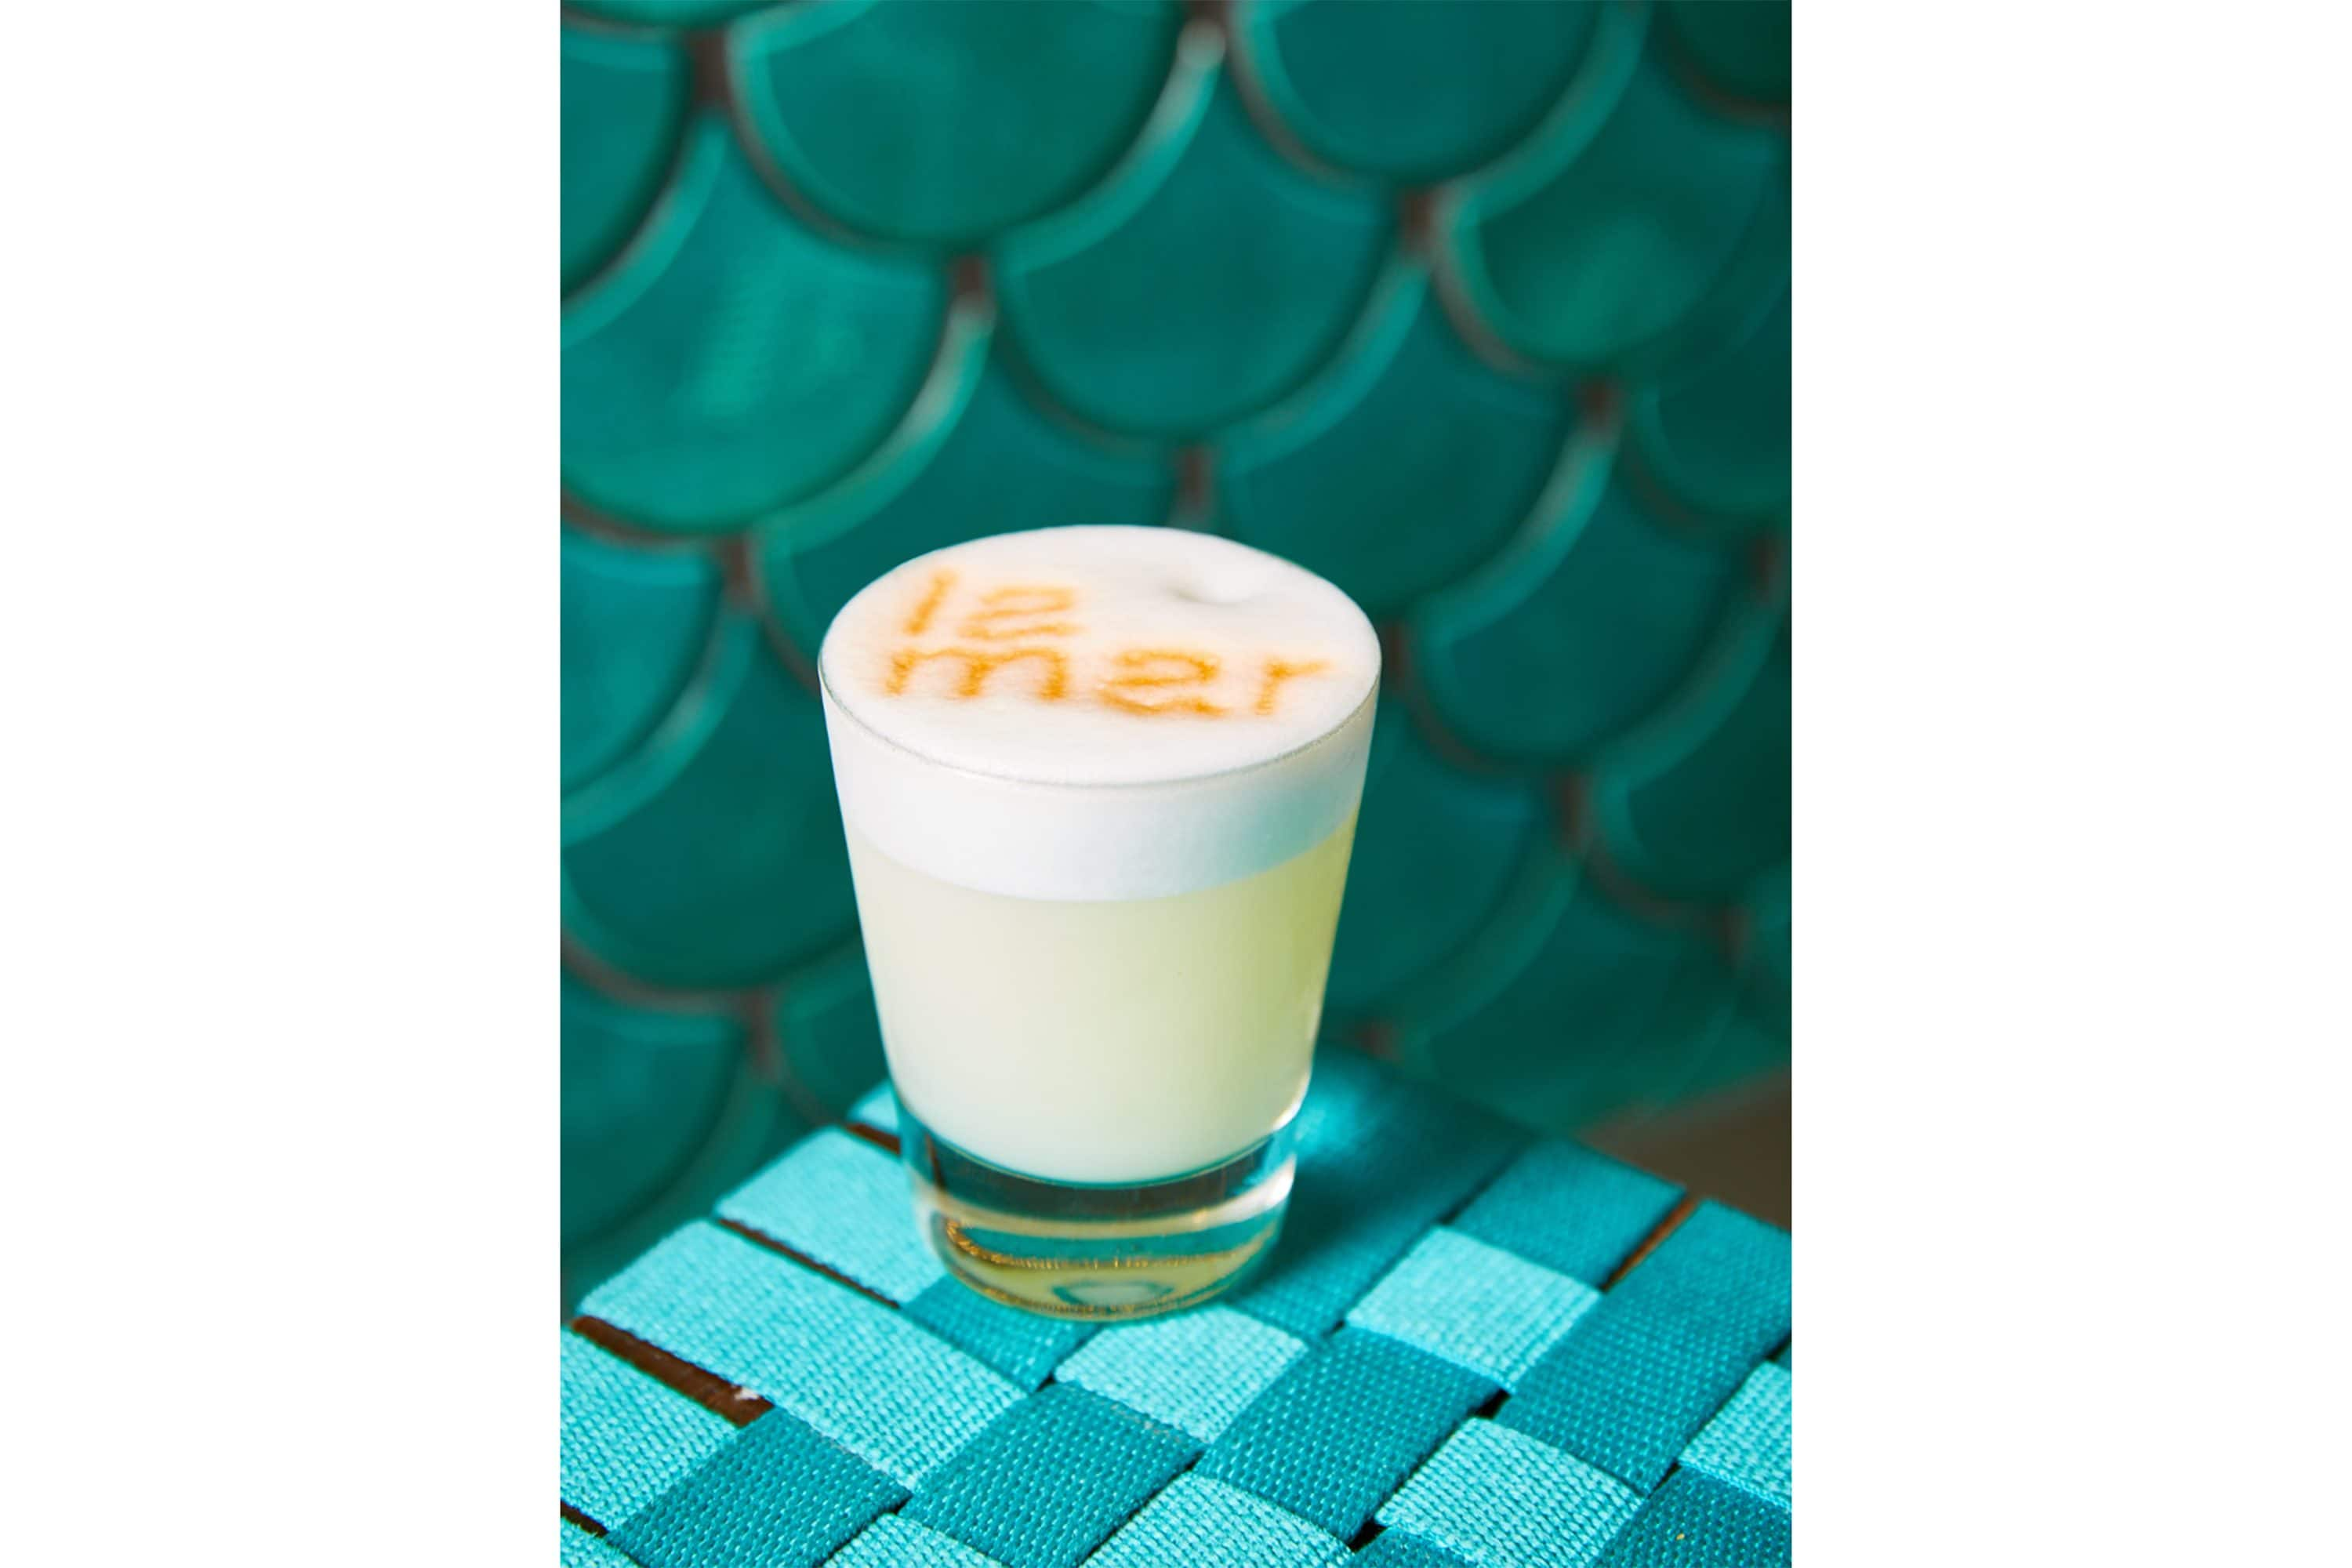 Pisco sour cocktail with La Mar dusted on top